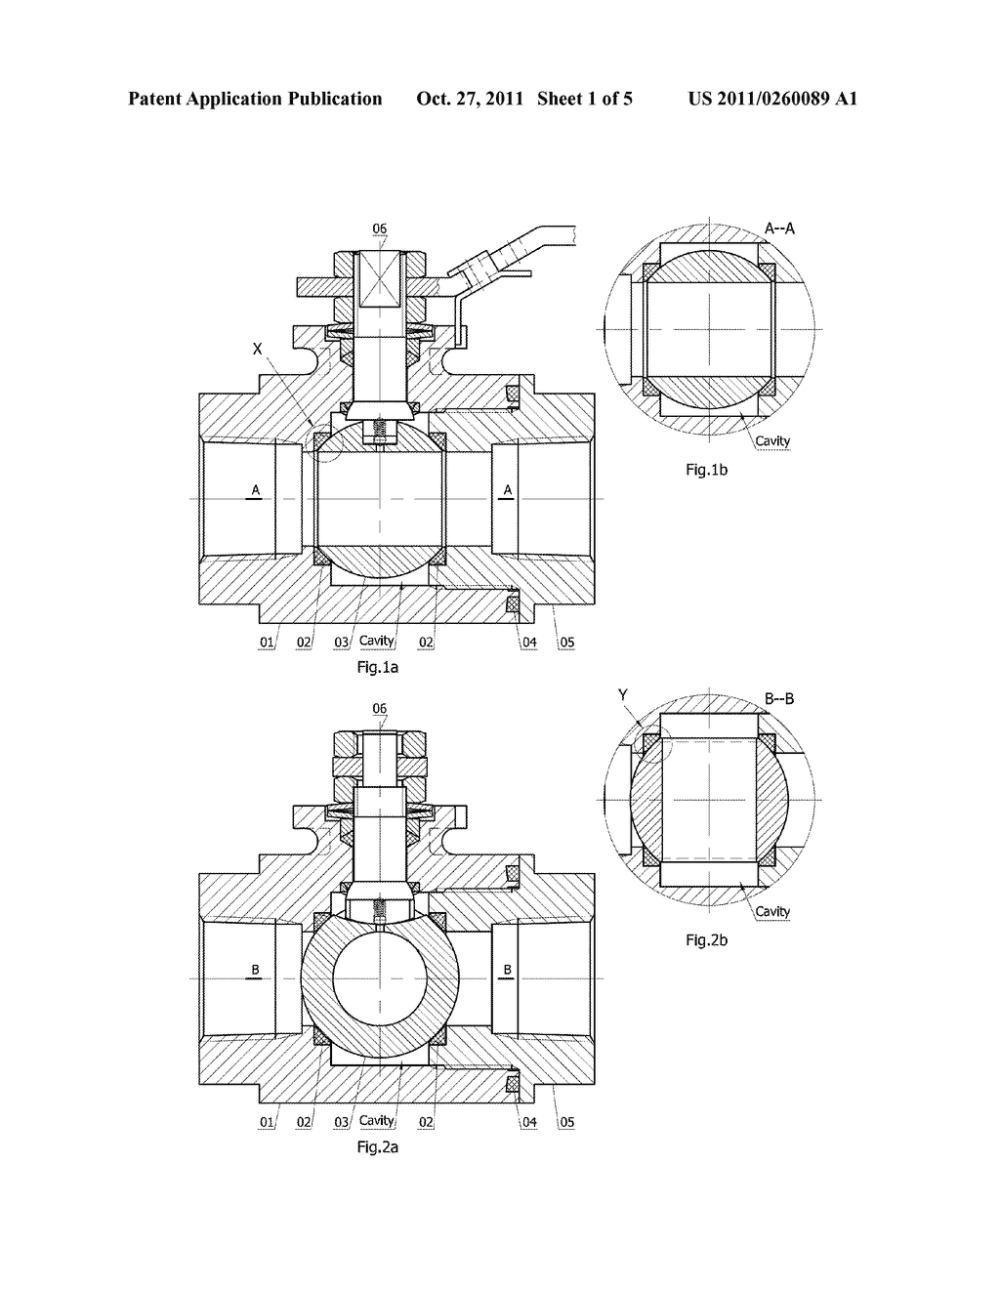 medium resolution of ball valve seats and ball valves designed with equilateral triangle section methods diagram schematic and image 02